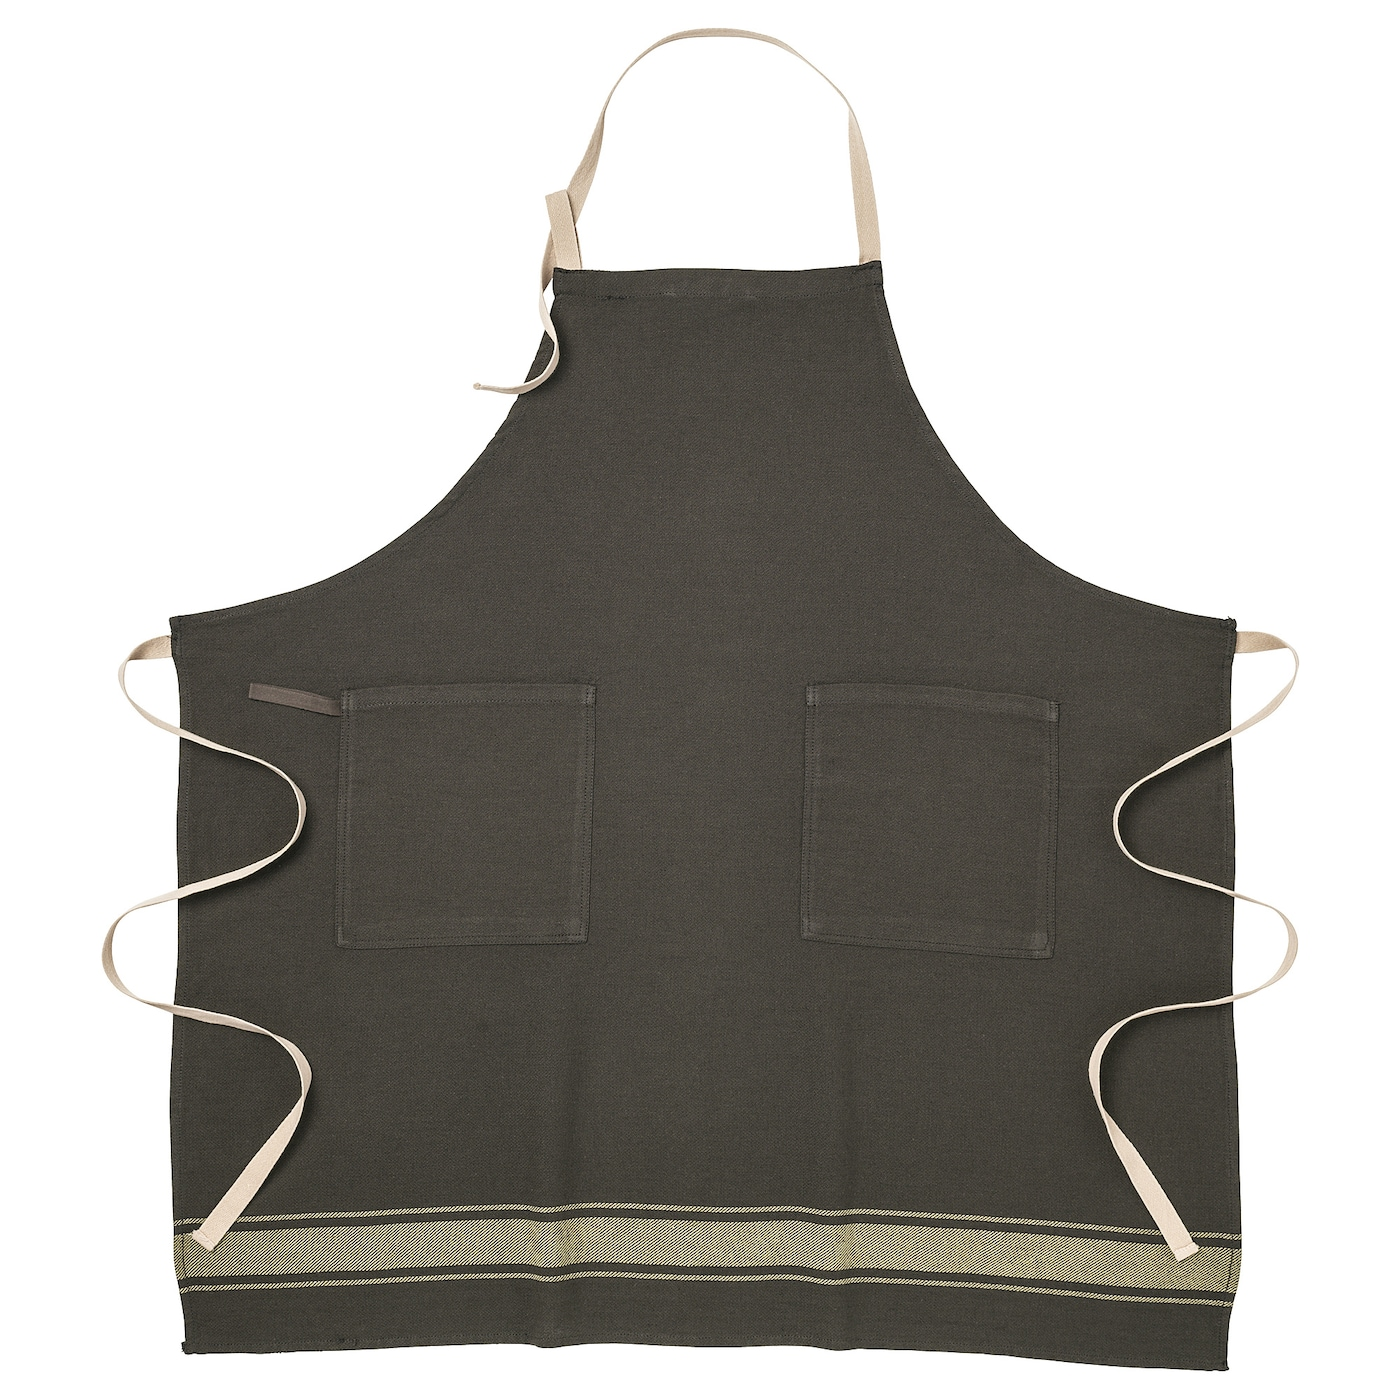 IKEA VARDAGEN apron The neck-band can be adjusted to fit everybody.